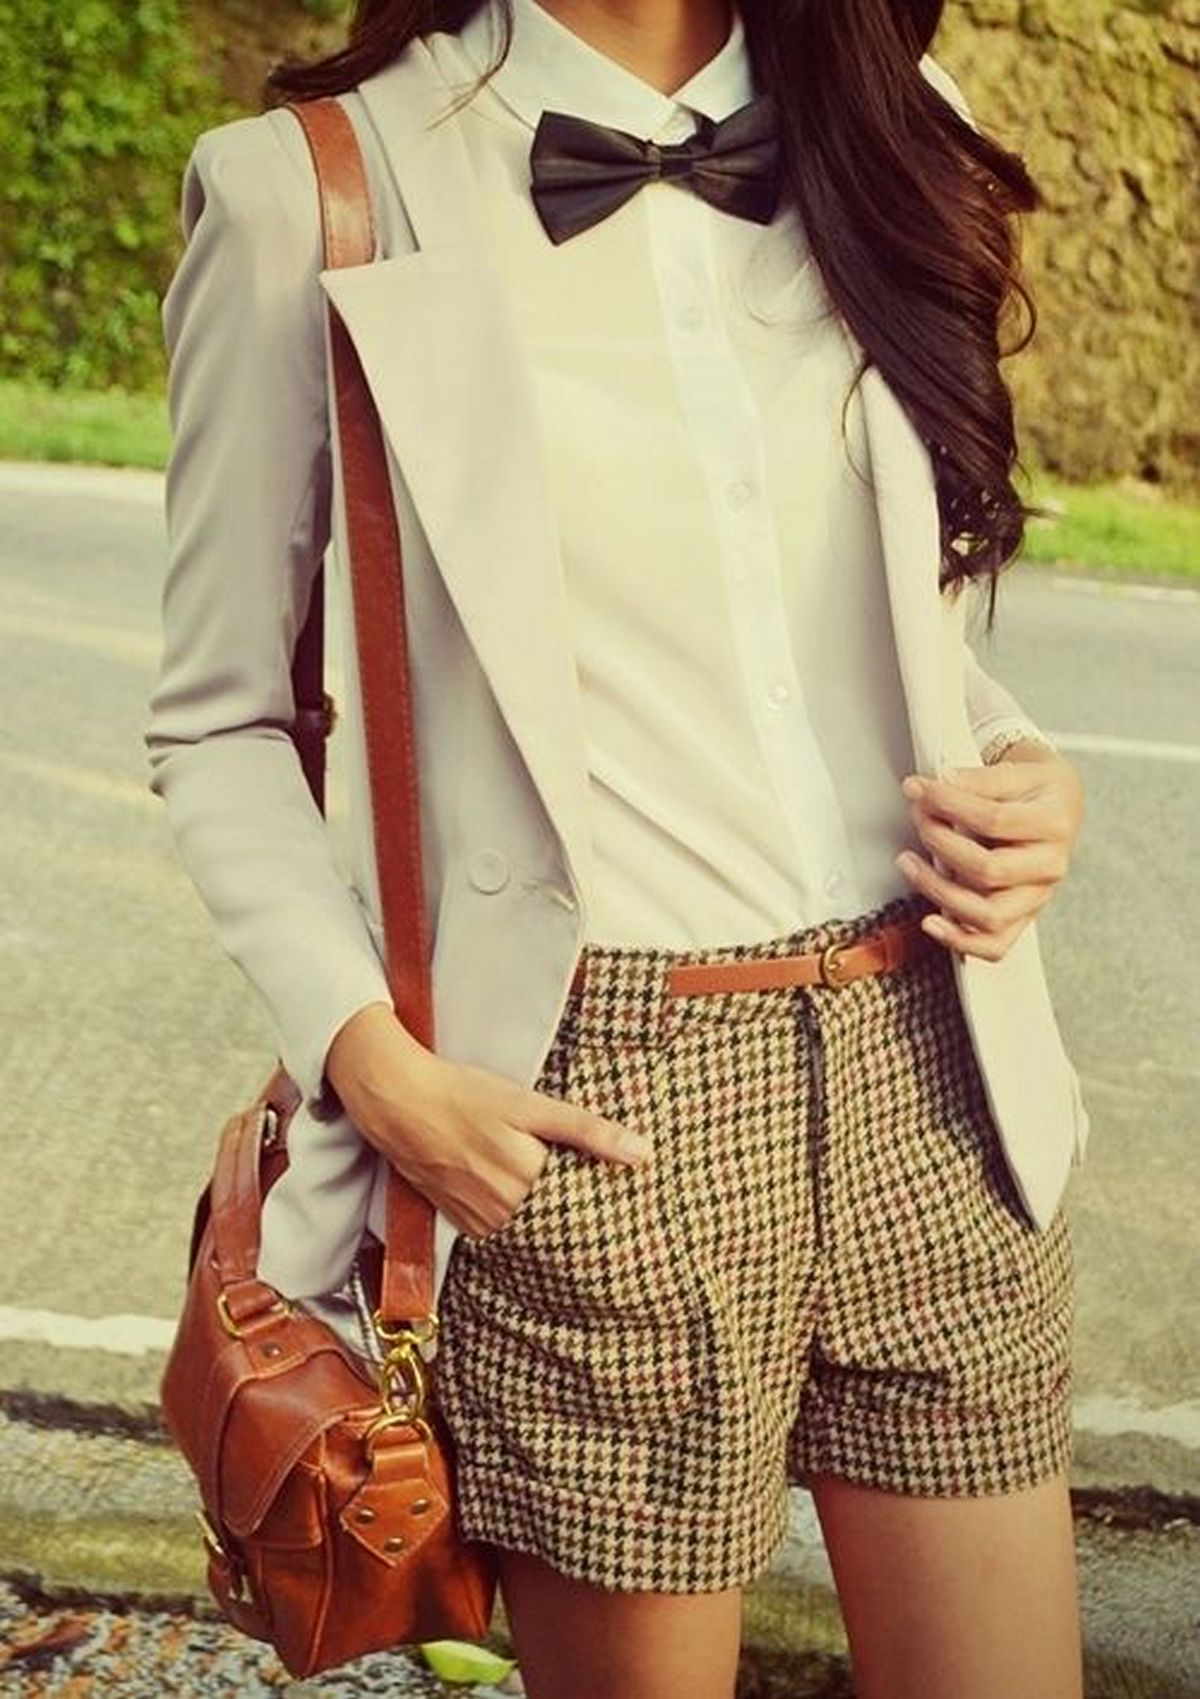 If femenine is not your style, these outfits are what you were looking for (60)